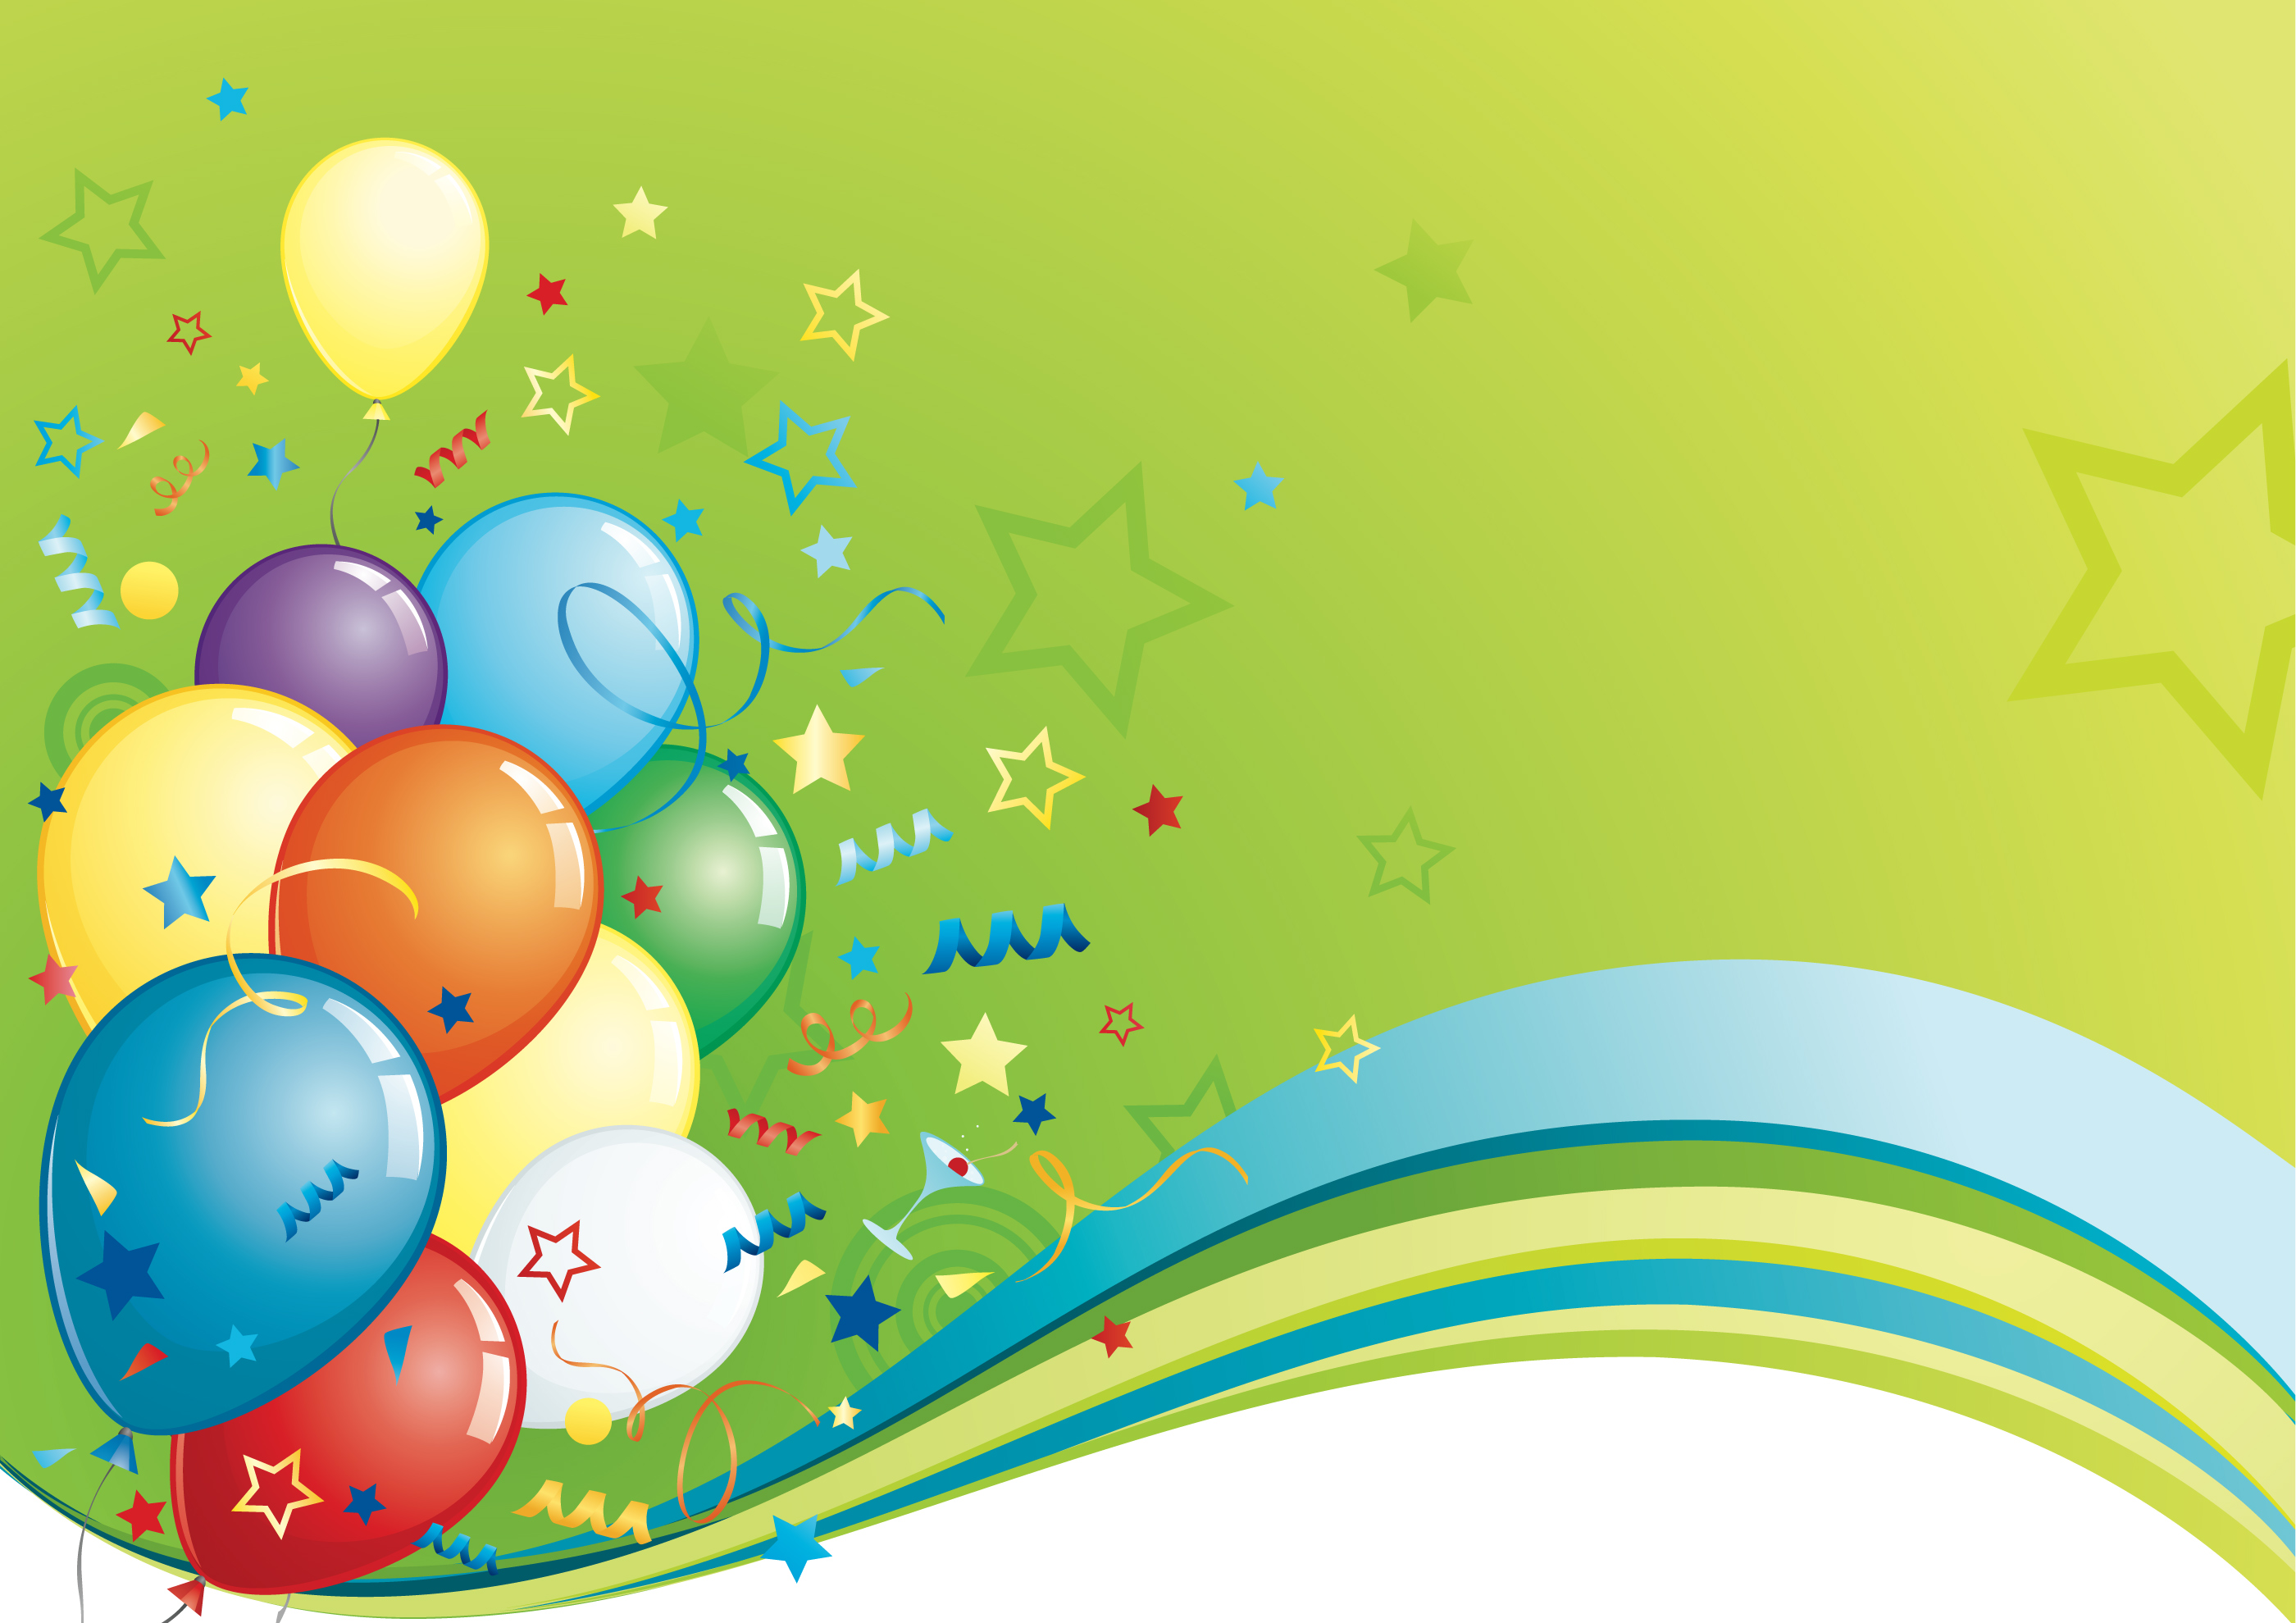 Free Download Free Download Birthday Party Balloons Hd Wallpaper Car Pictures 2800x1979 For Your Desktop Mobile Tablet Explore 69 Birthday Background Pictures Birthday Background Pictures Happy Birthday Background Pictures